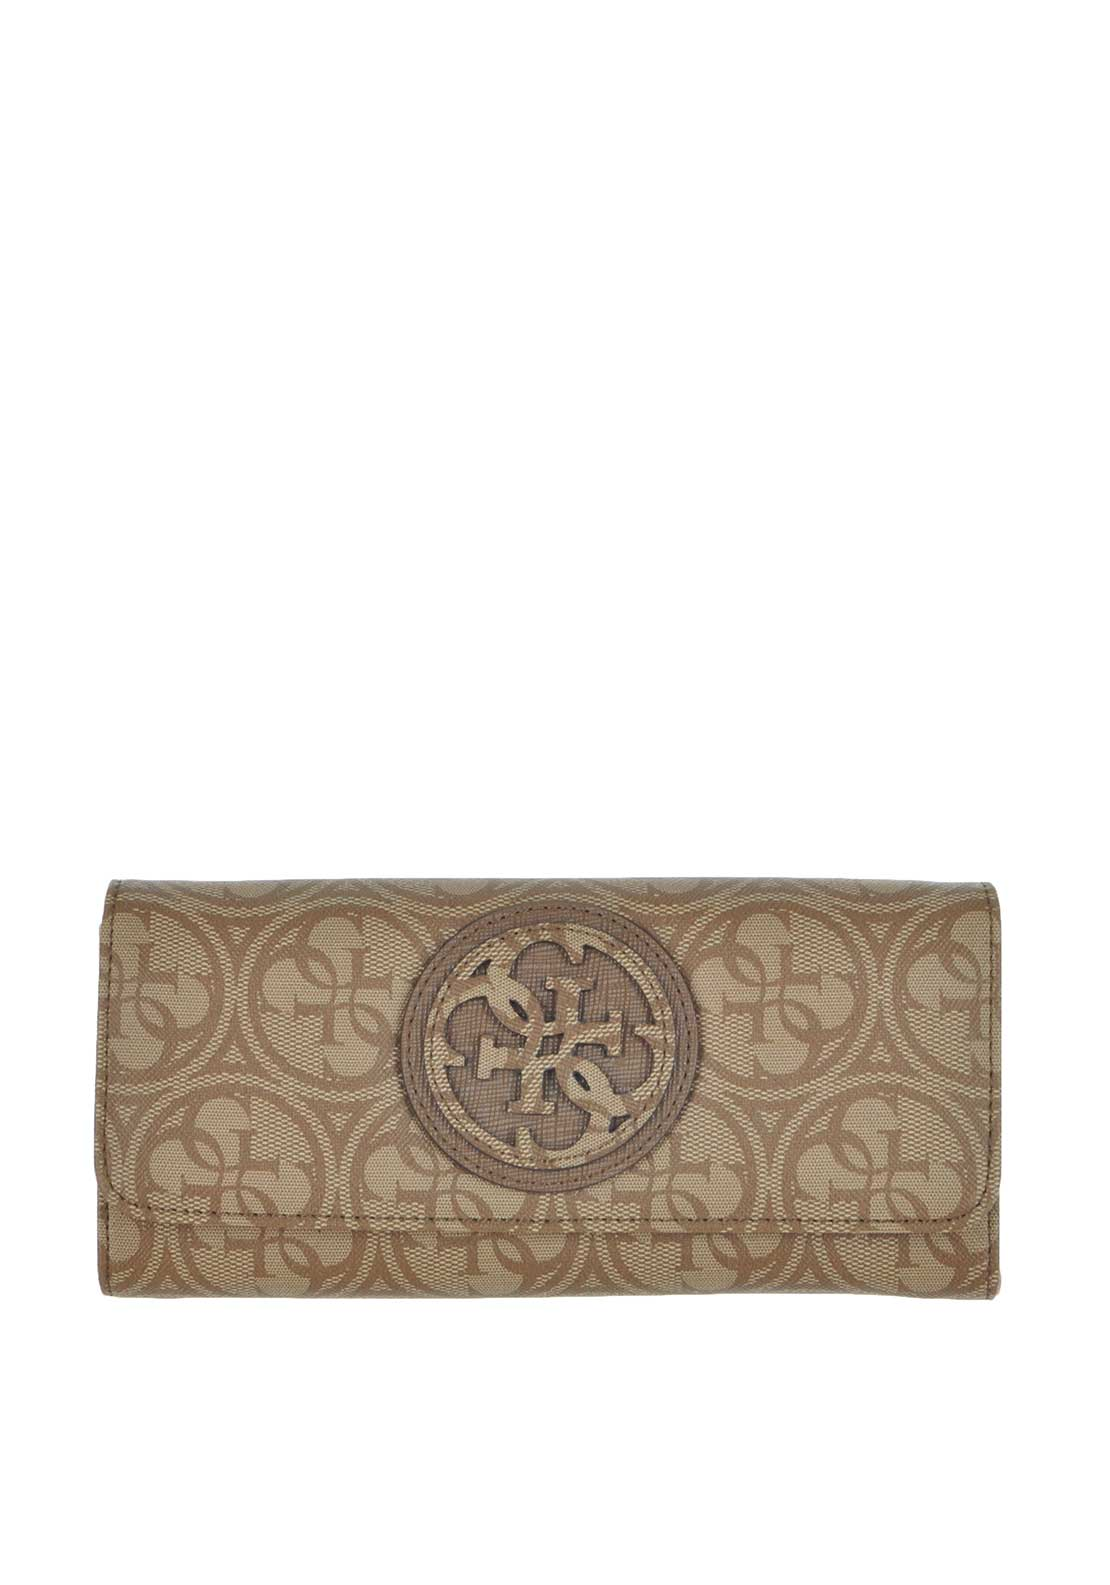 Guess Carly Large Flap Wallet, Brown